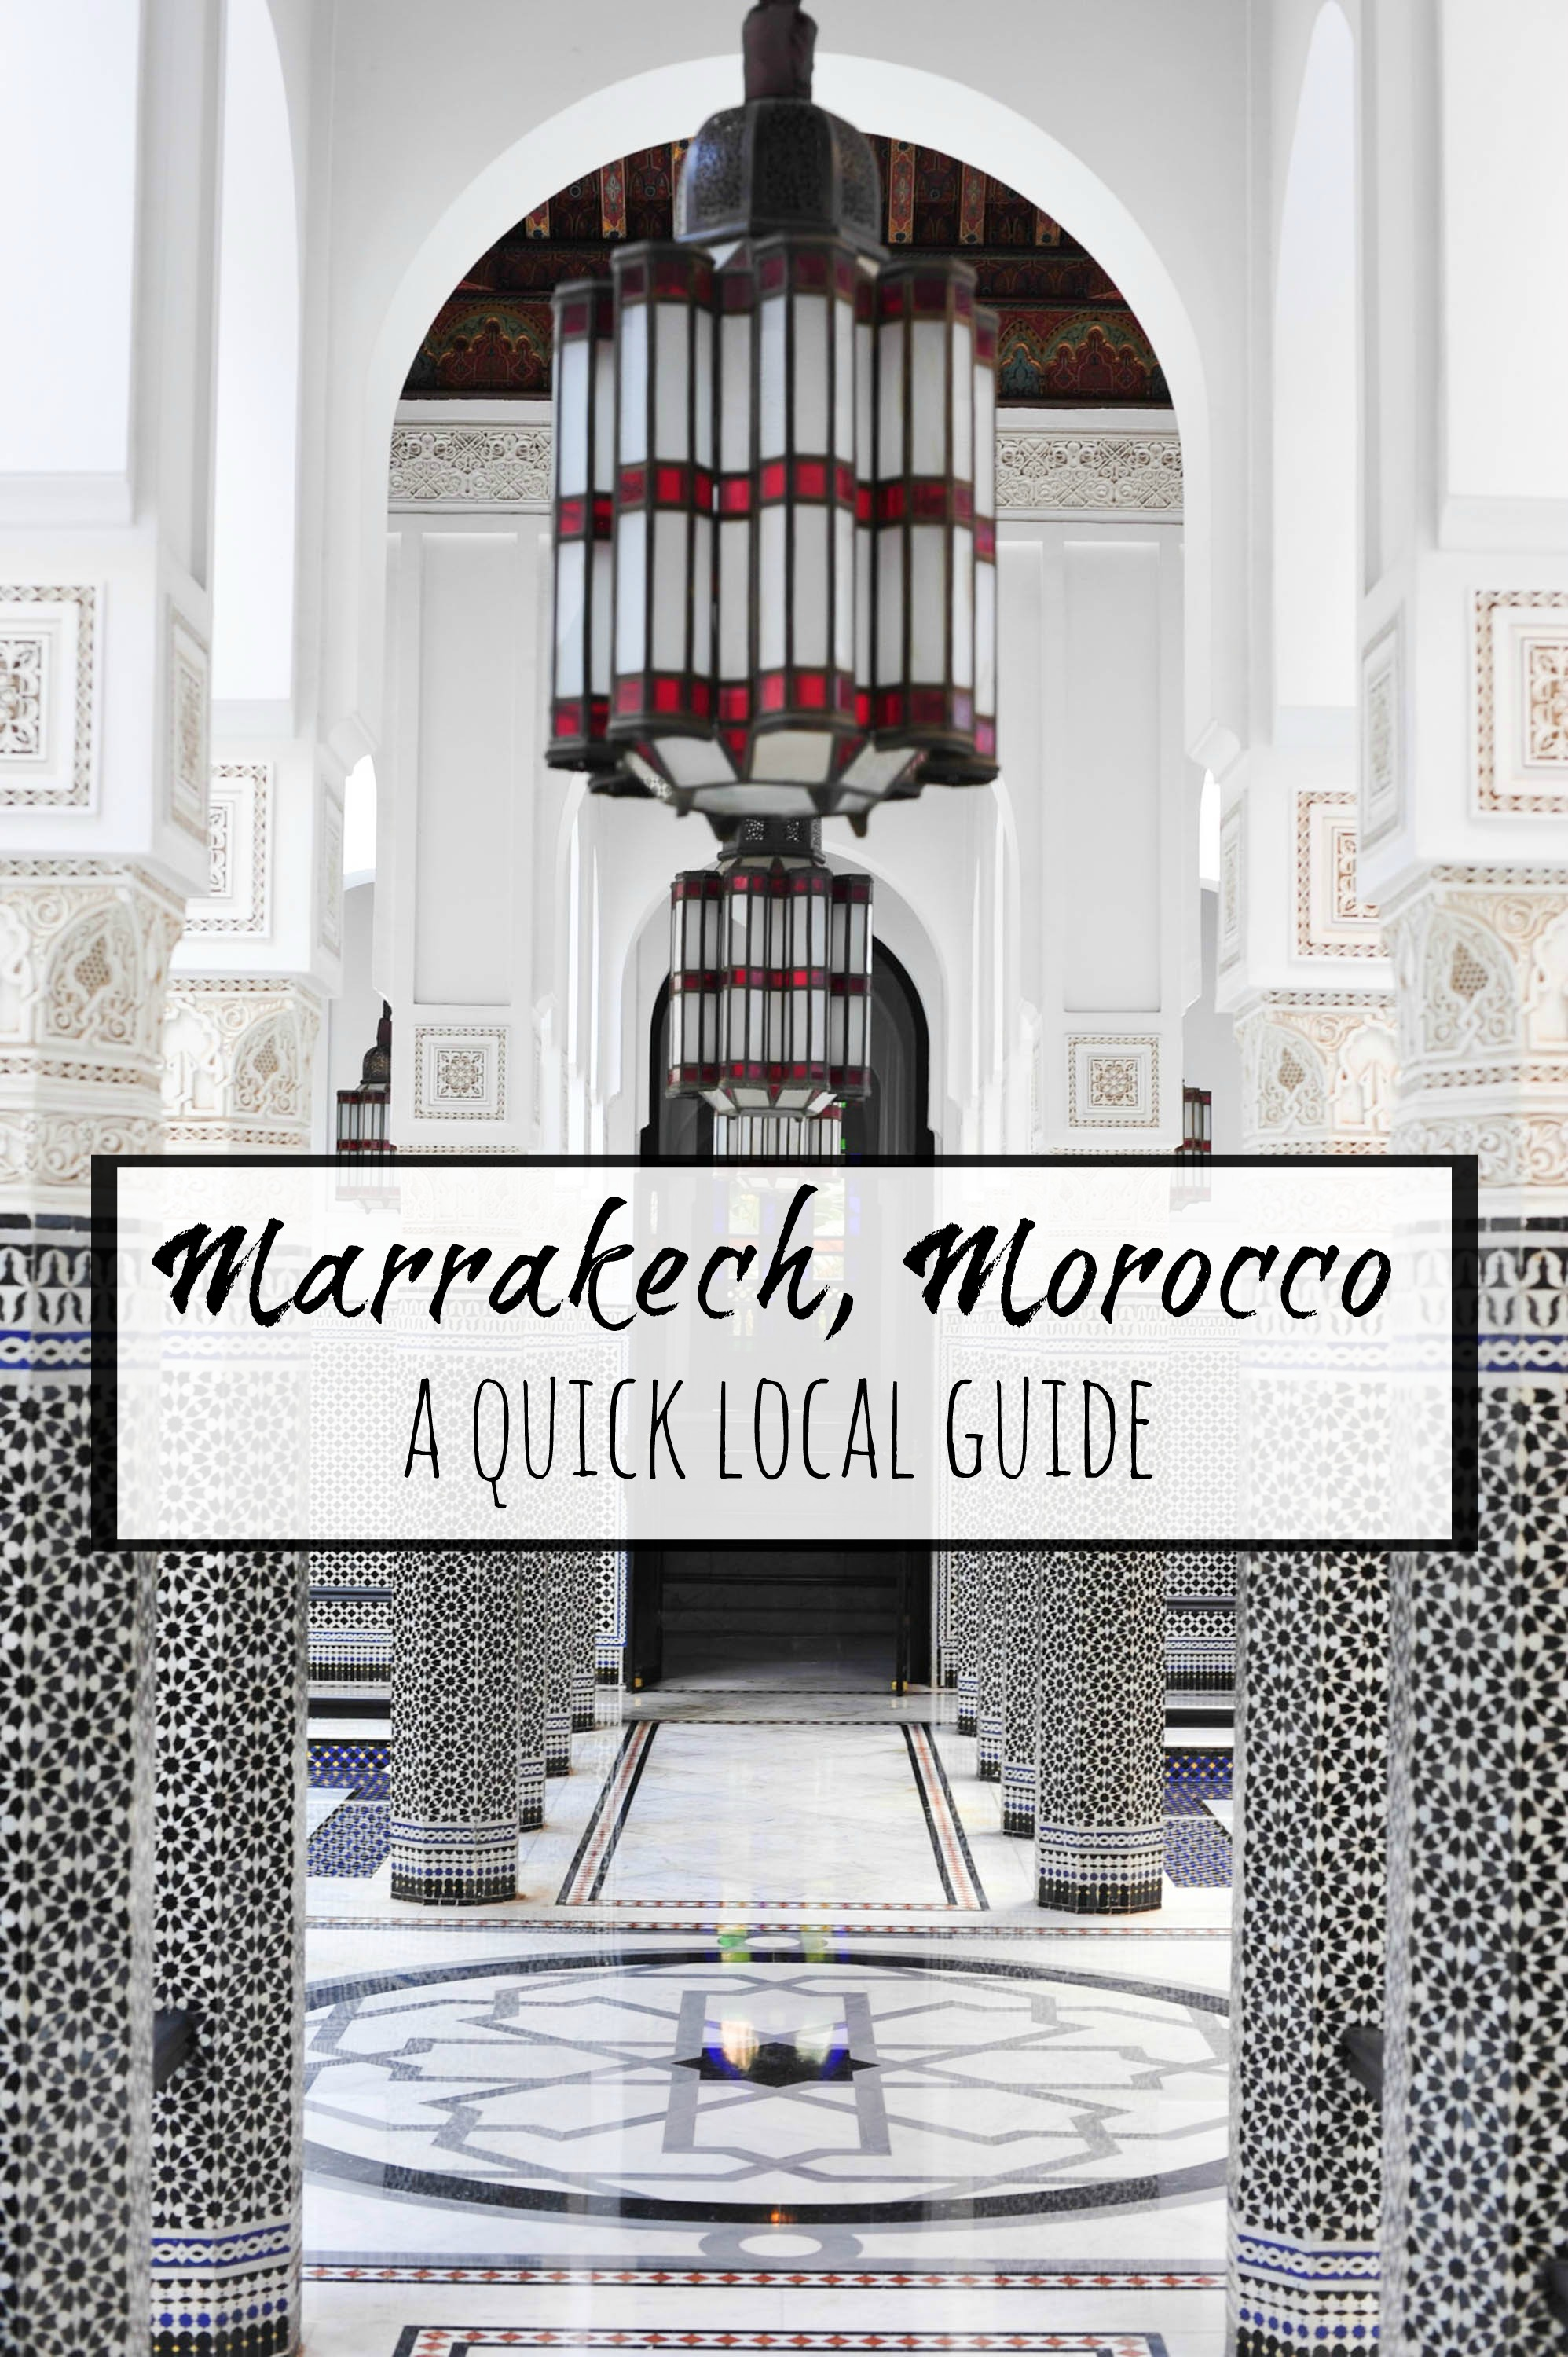 Marrakech Morocco- a quick local guide